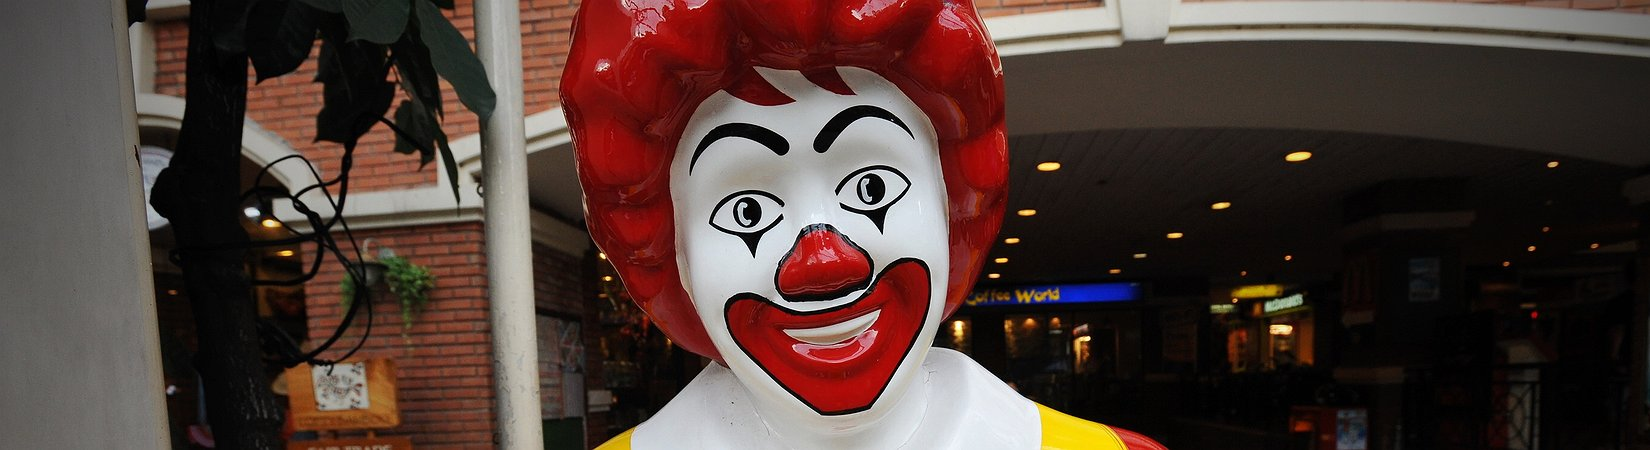 McDonald's sells 80% of its China operations